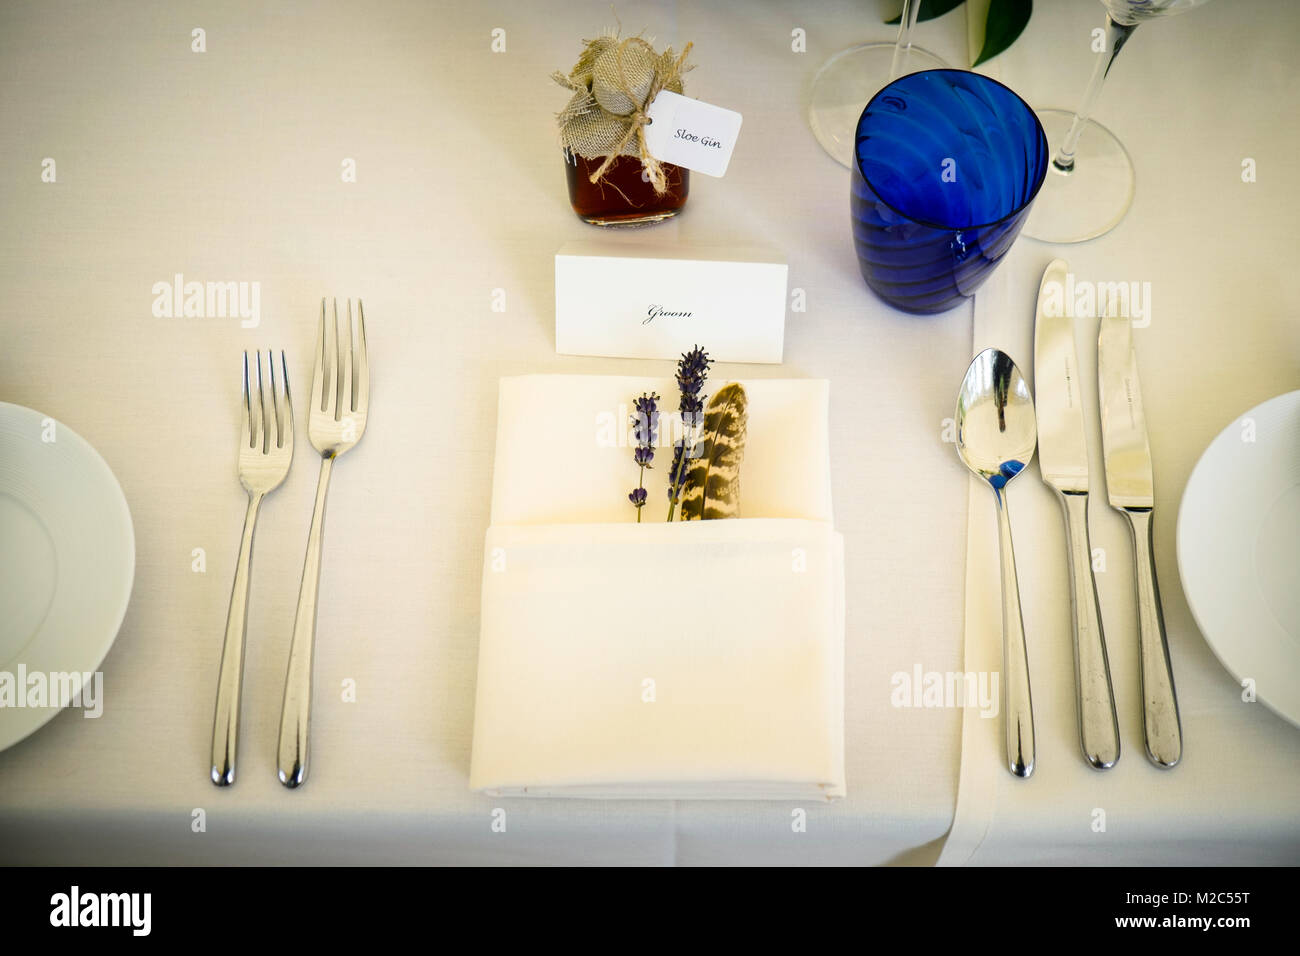 Napkin Place Setting On Table With Place Card And Wedding Favour Stock Photo Alamy